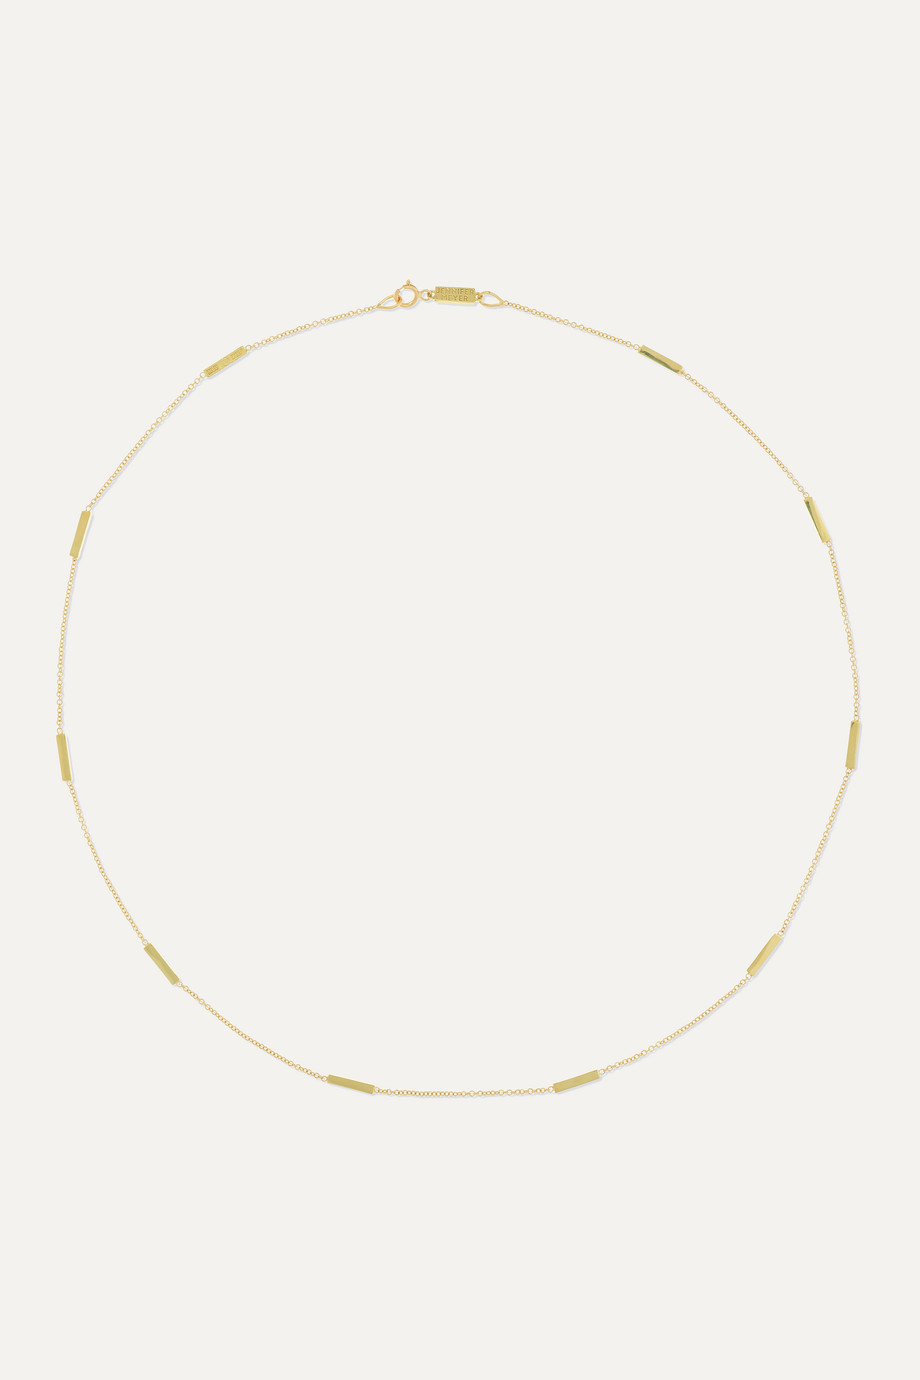 Jennifer Meyer Collier en or 18 carats Bar-By-the-Inch